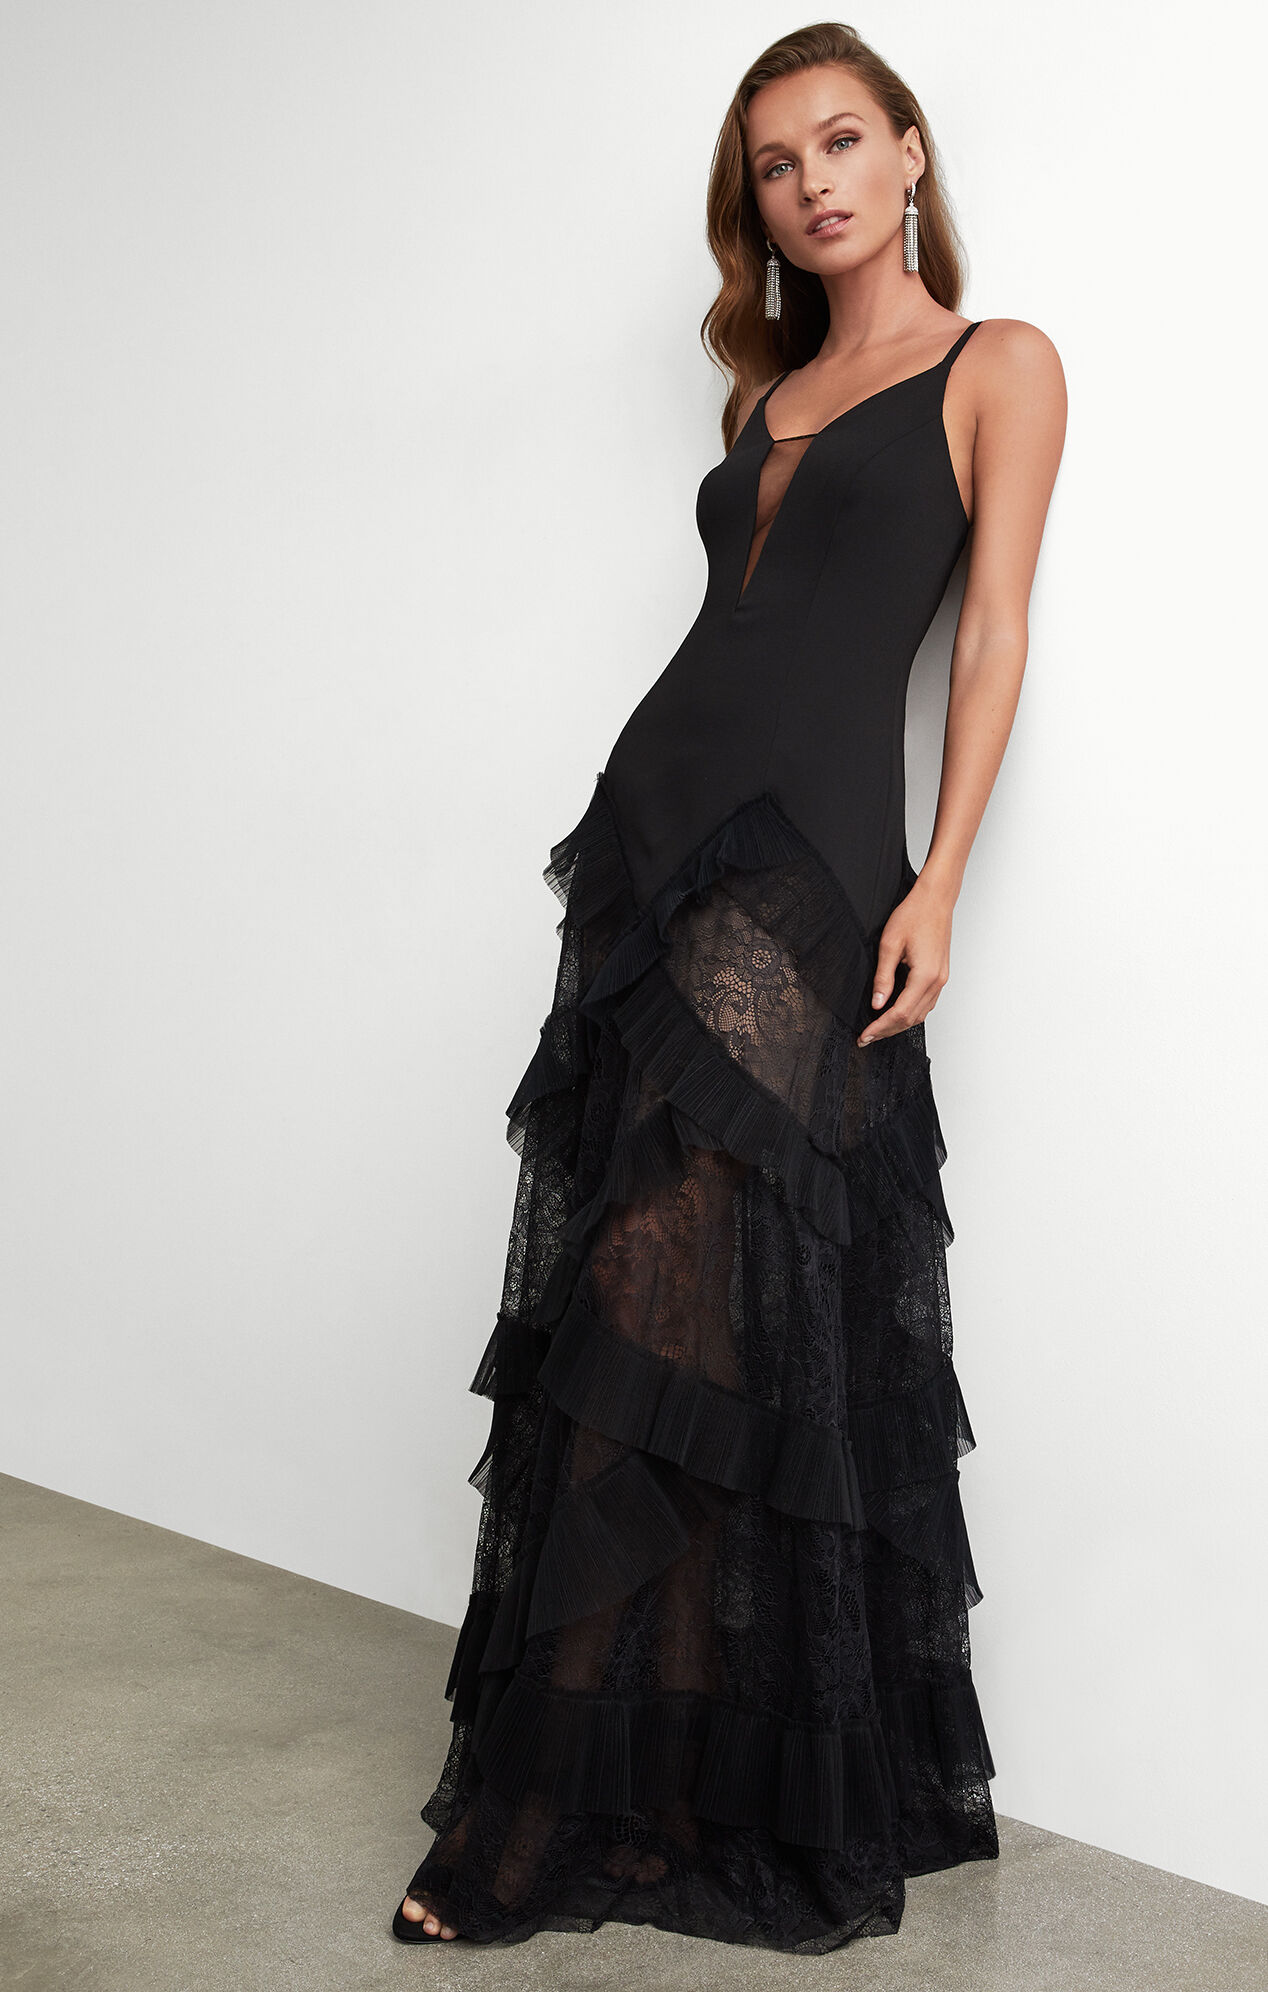 Black dress gown - Avaline Pleated Gown